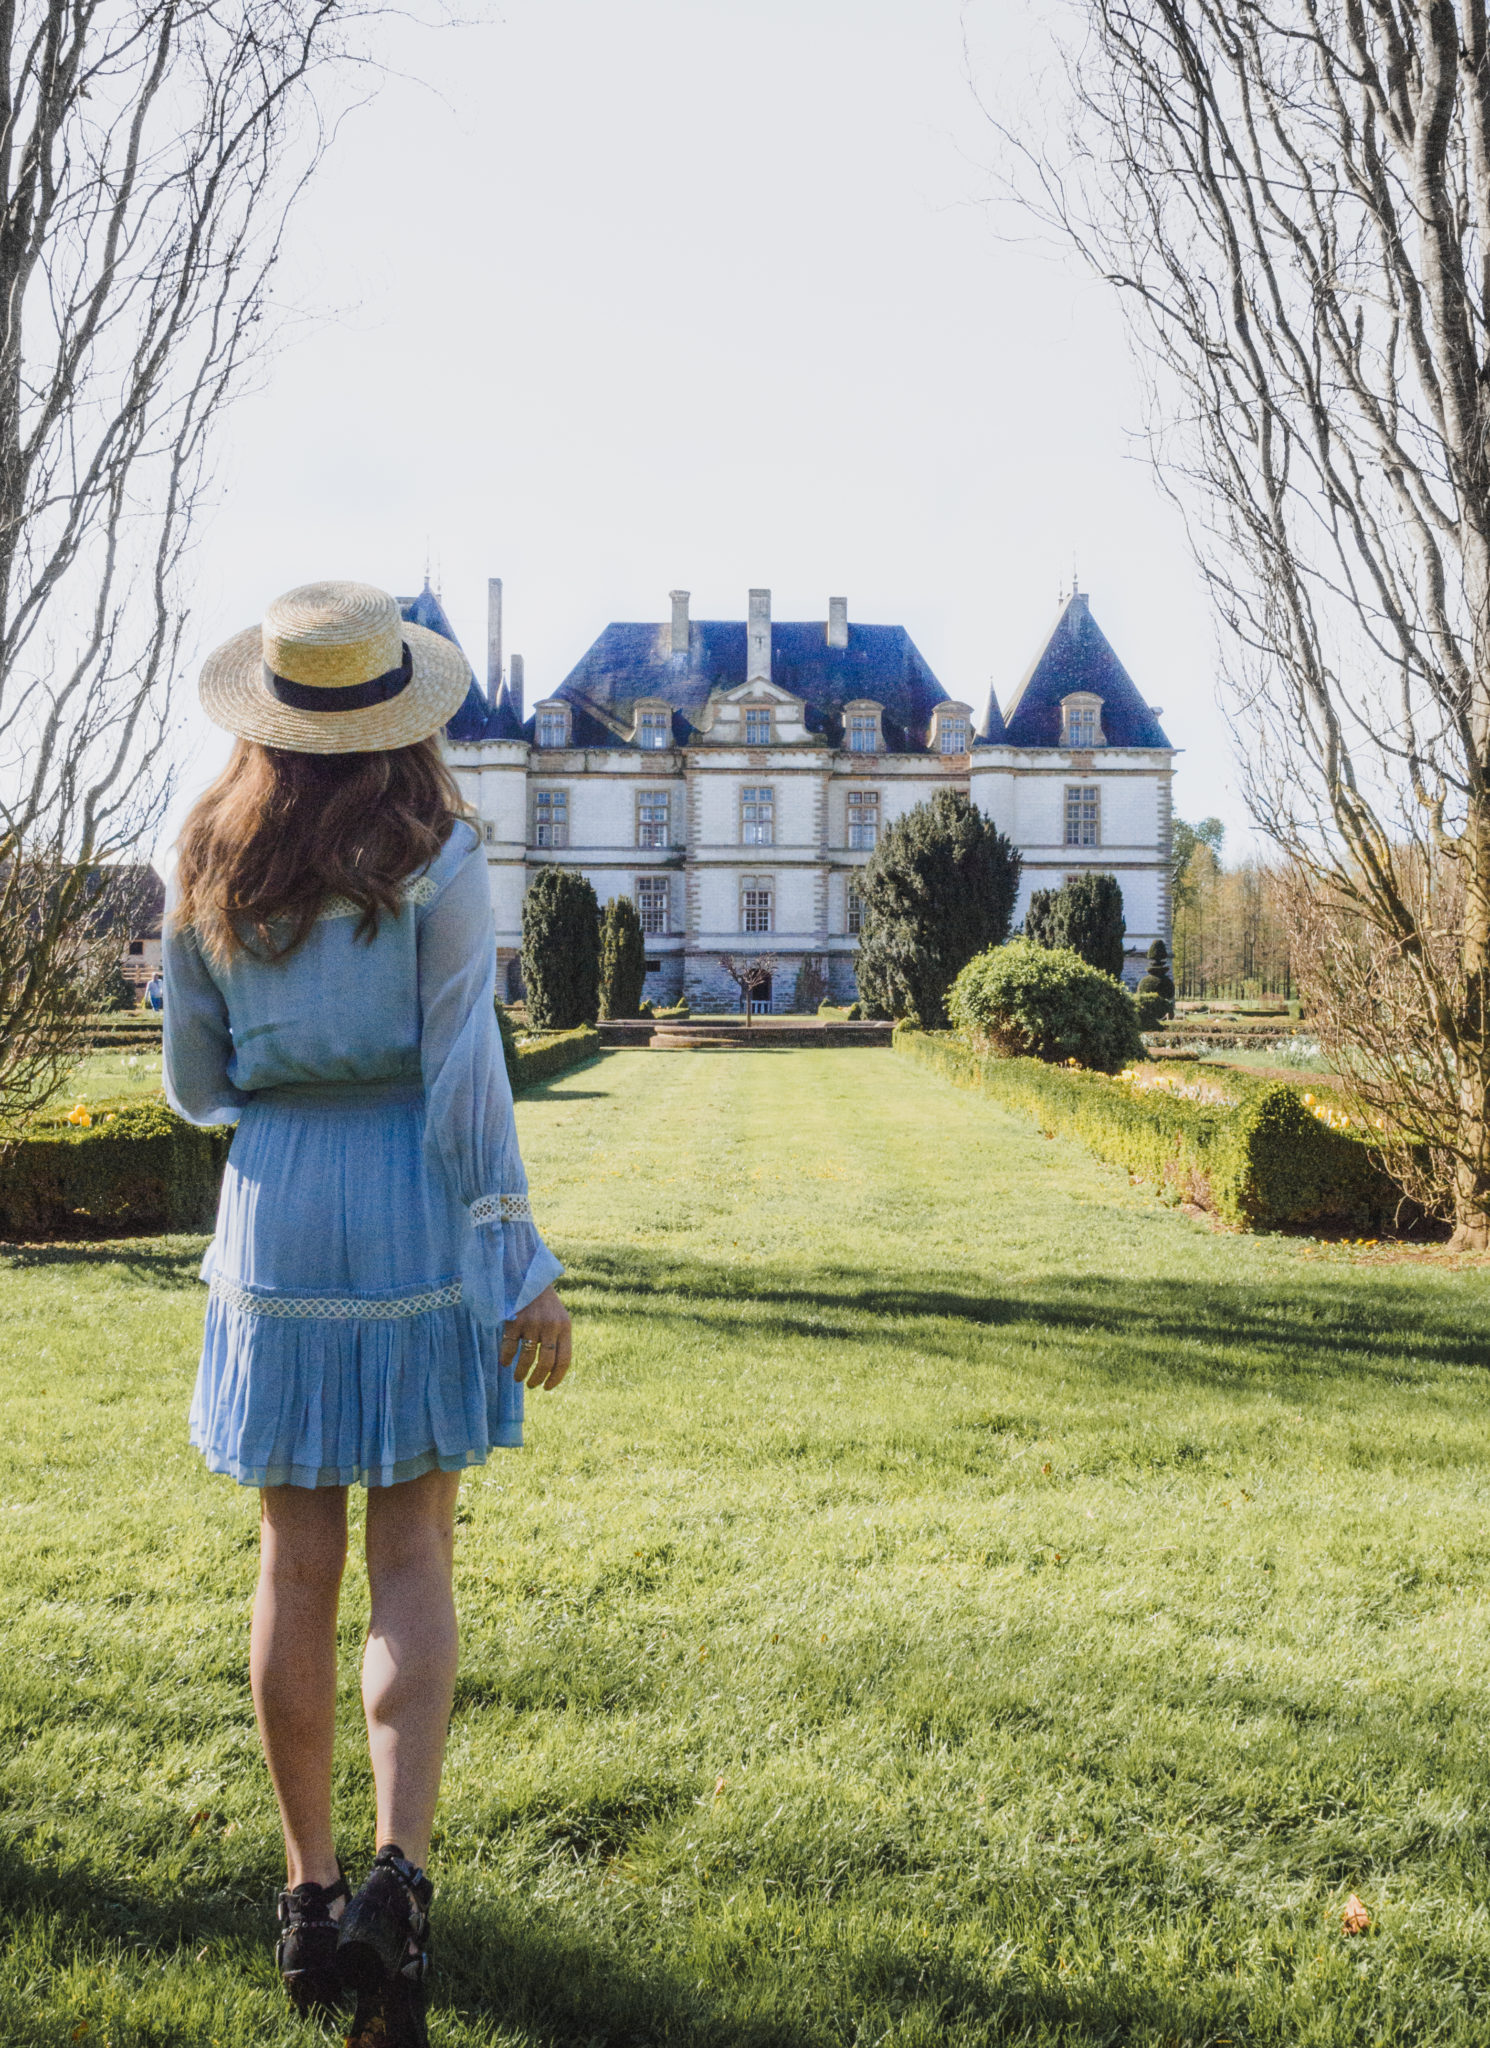 Visiting Cormatin Chateau | WORLD OF WANDERLUST